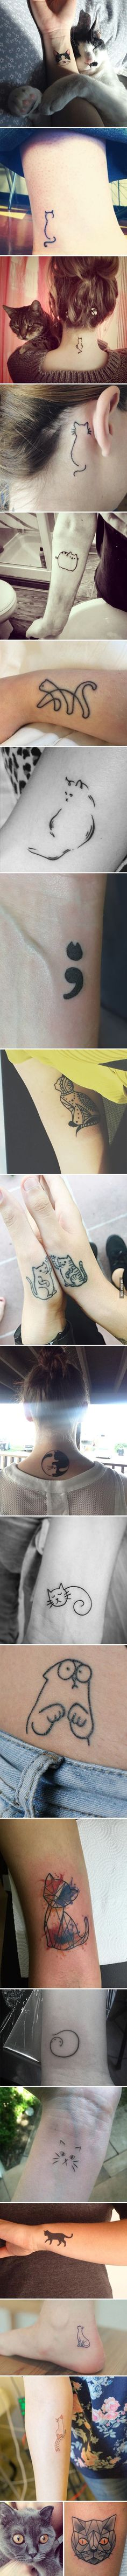 """coolTop Tiny Tattoo Idea - 20 Minimalistic """"Cattoos"""" For Cat Lovers Check more at http://tattooviral.com/tattoo-designs/small-tattoos/tiny-tattoo-idea-20-minimalistic-cattoos-for-cat-lovers/"""